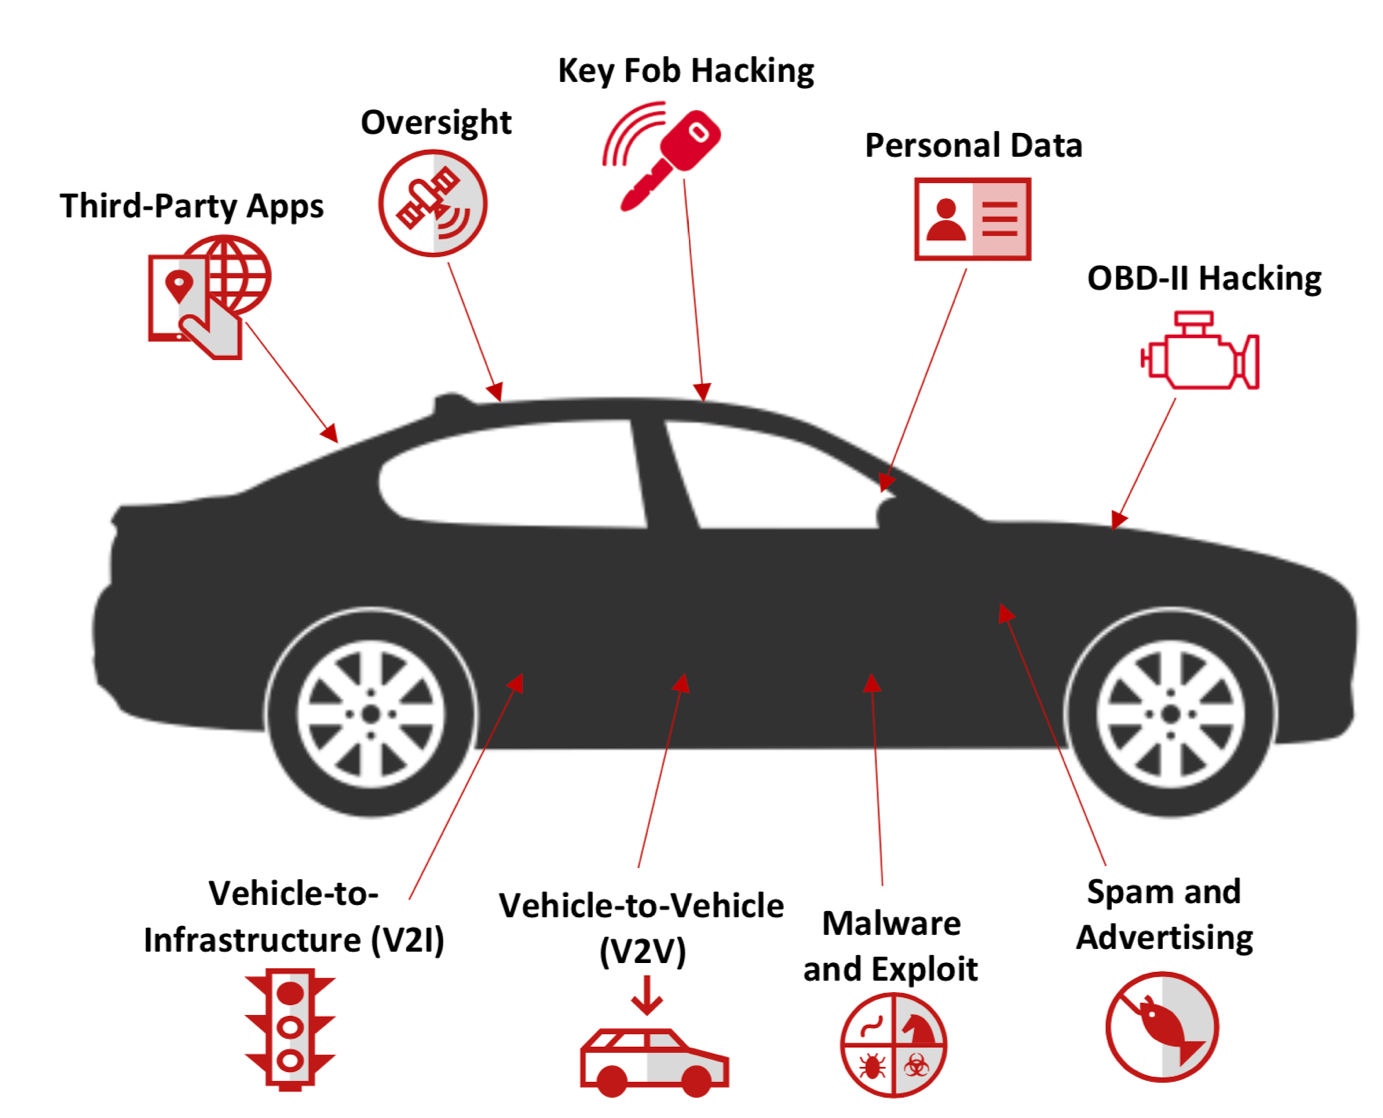 Modern Cars are Vulnerable to Hacking and Malware Attack